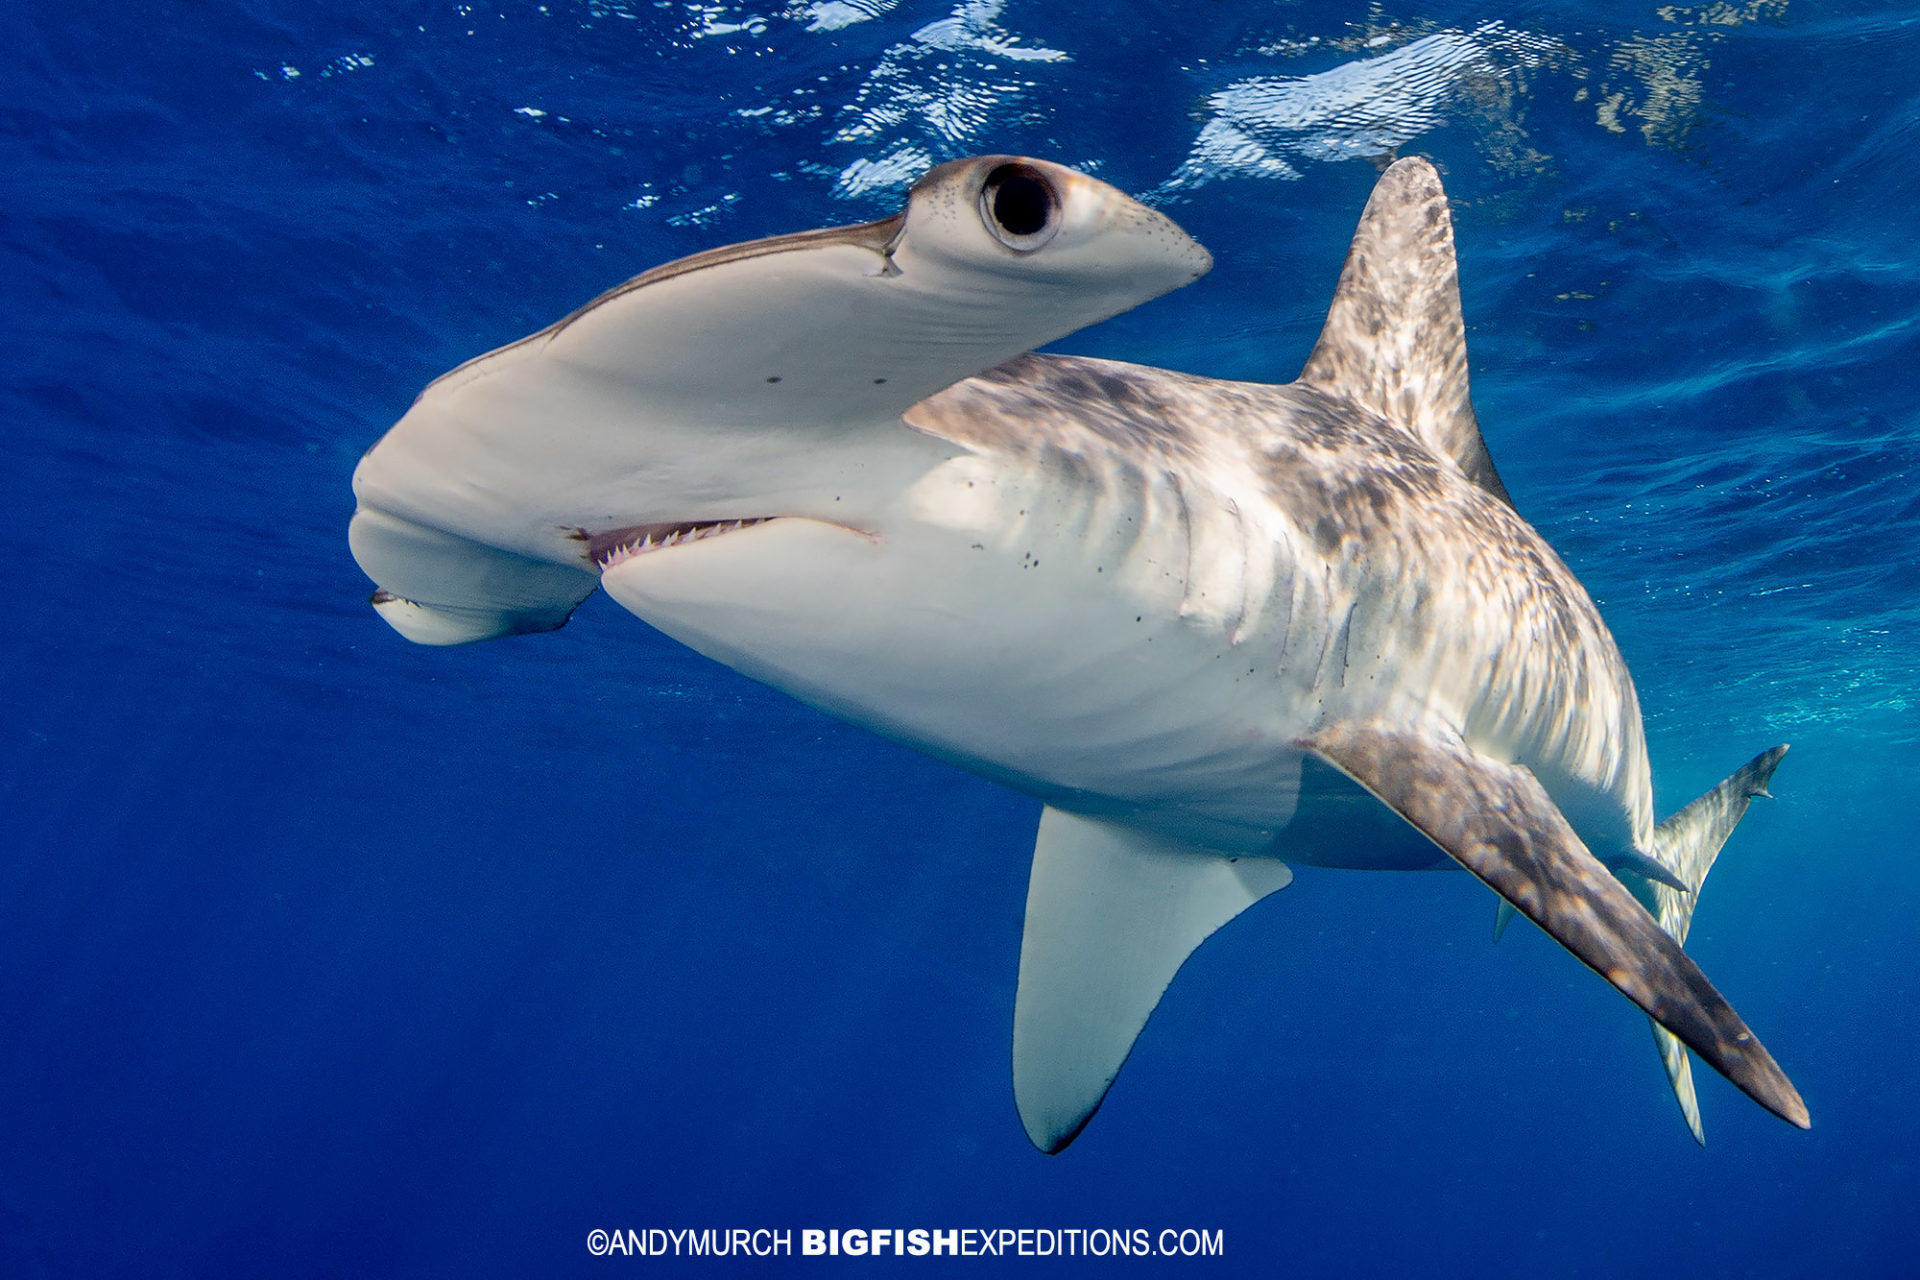 Snorkeling with Smooth Hammerhead Sharks in Mexico.